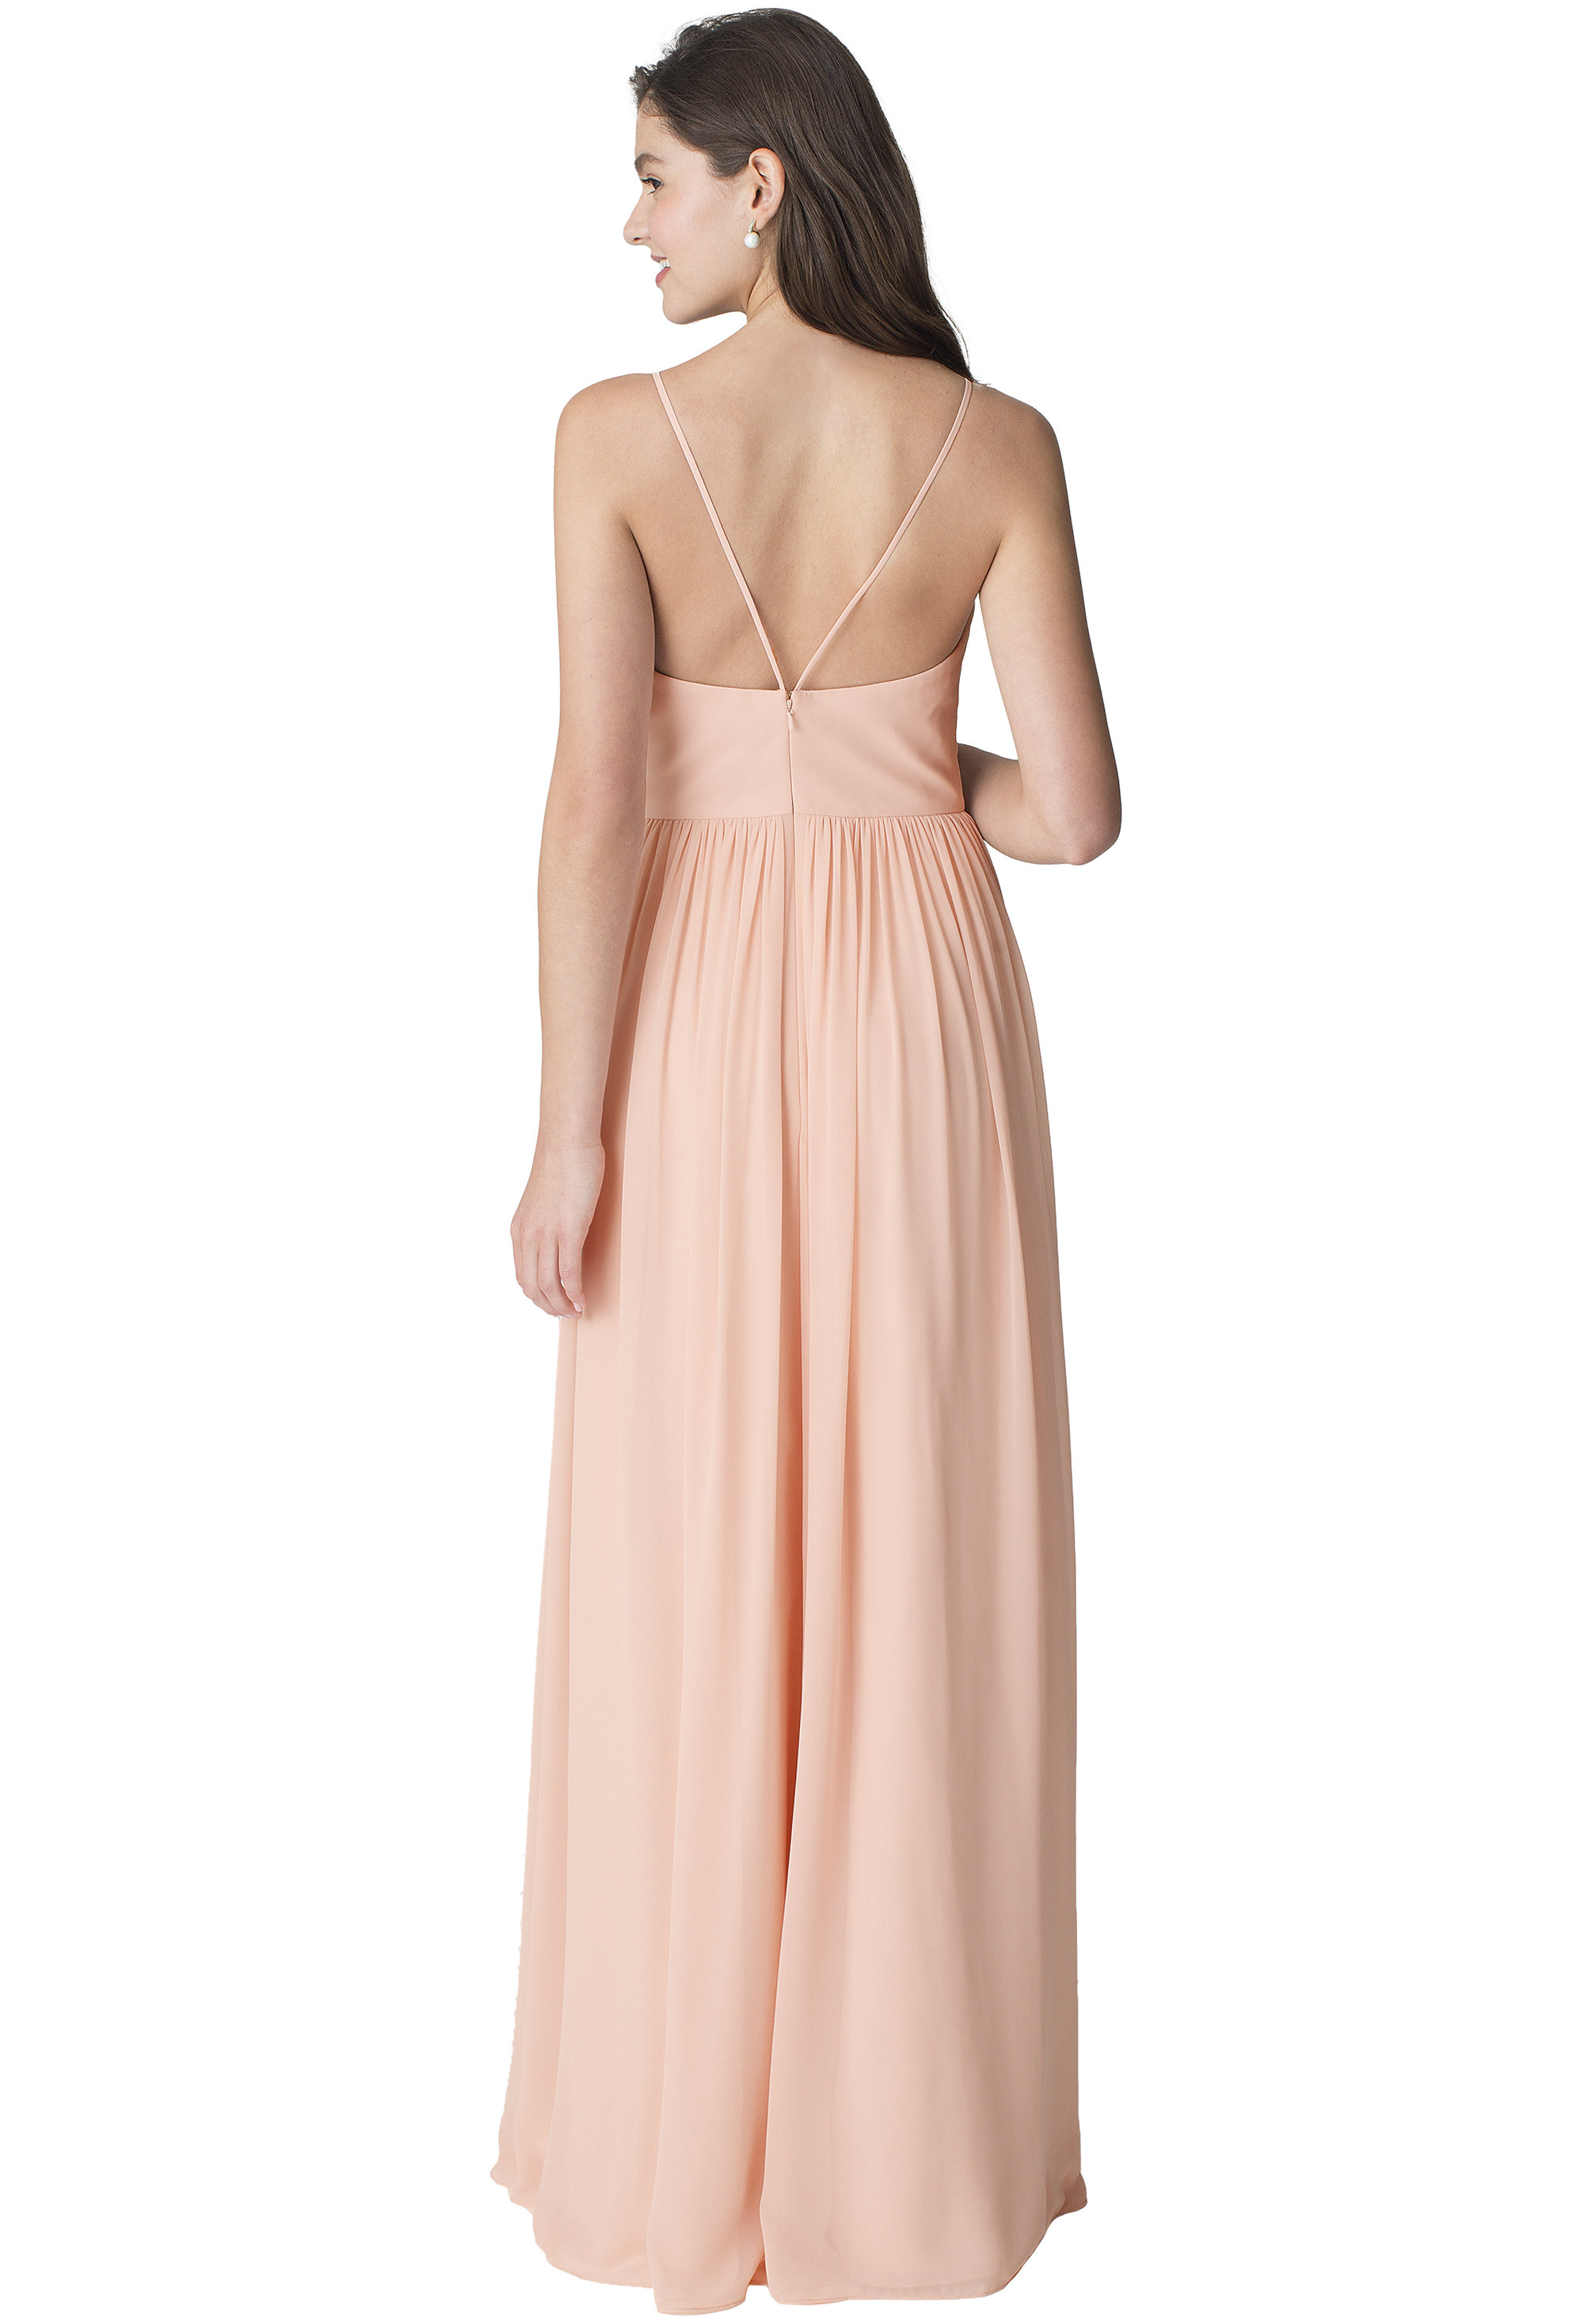 Bill Levkoff SHELL PINK Chiffon Sleeveless A-line gown, $210.00 Back